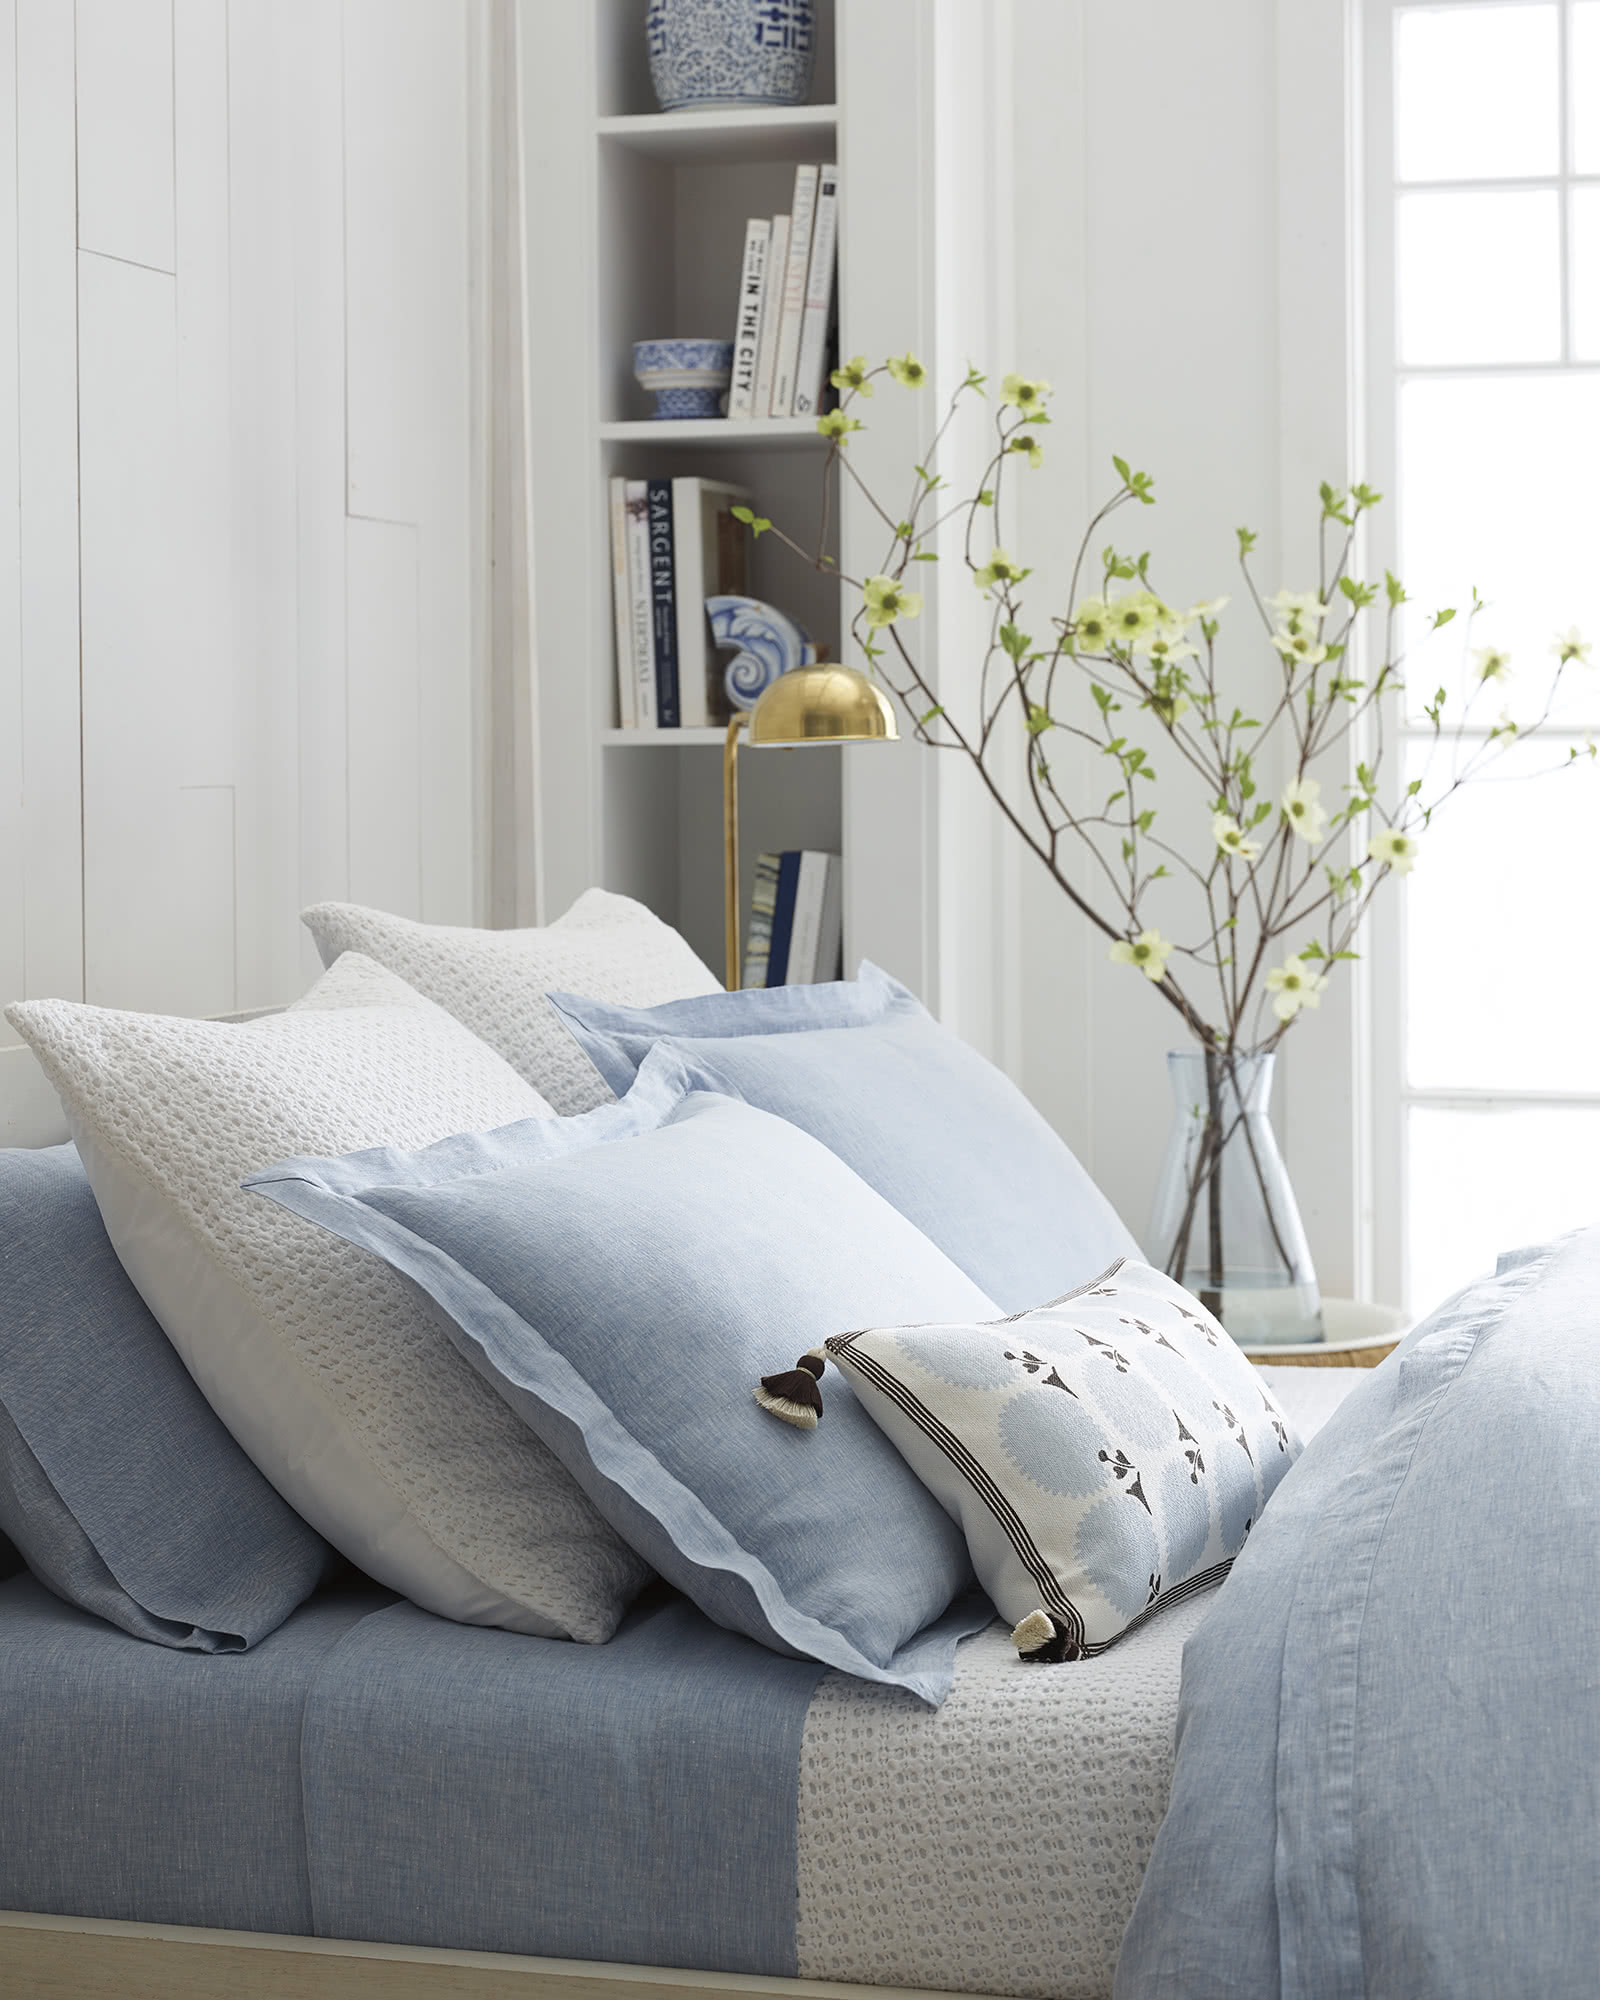 Cavallo bedding bundle with chambray blue beauty - Serena & Lily